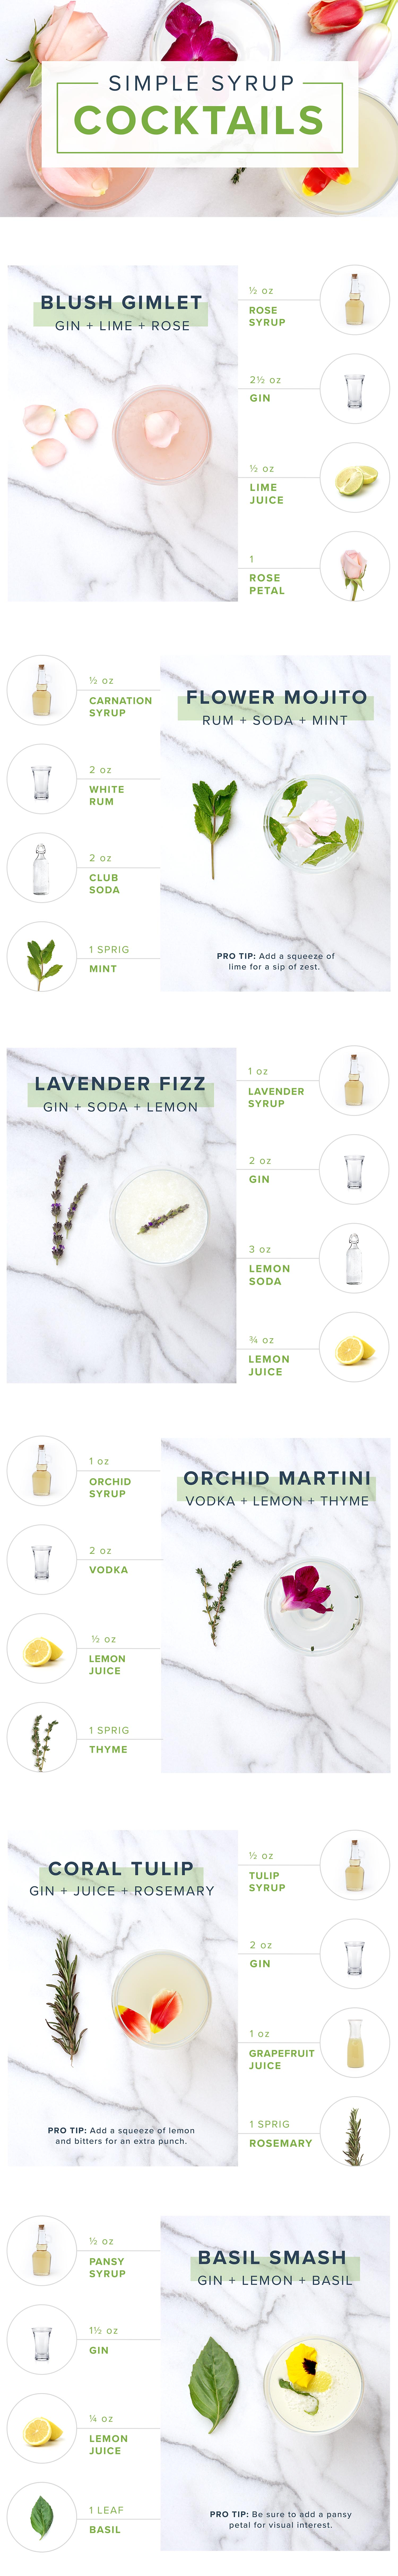 simple syrup recipes IG